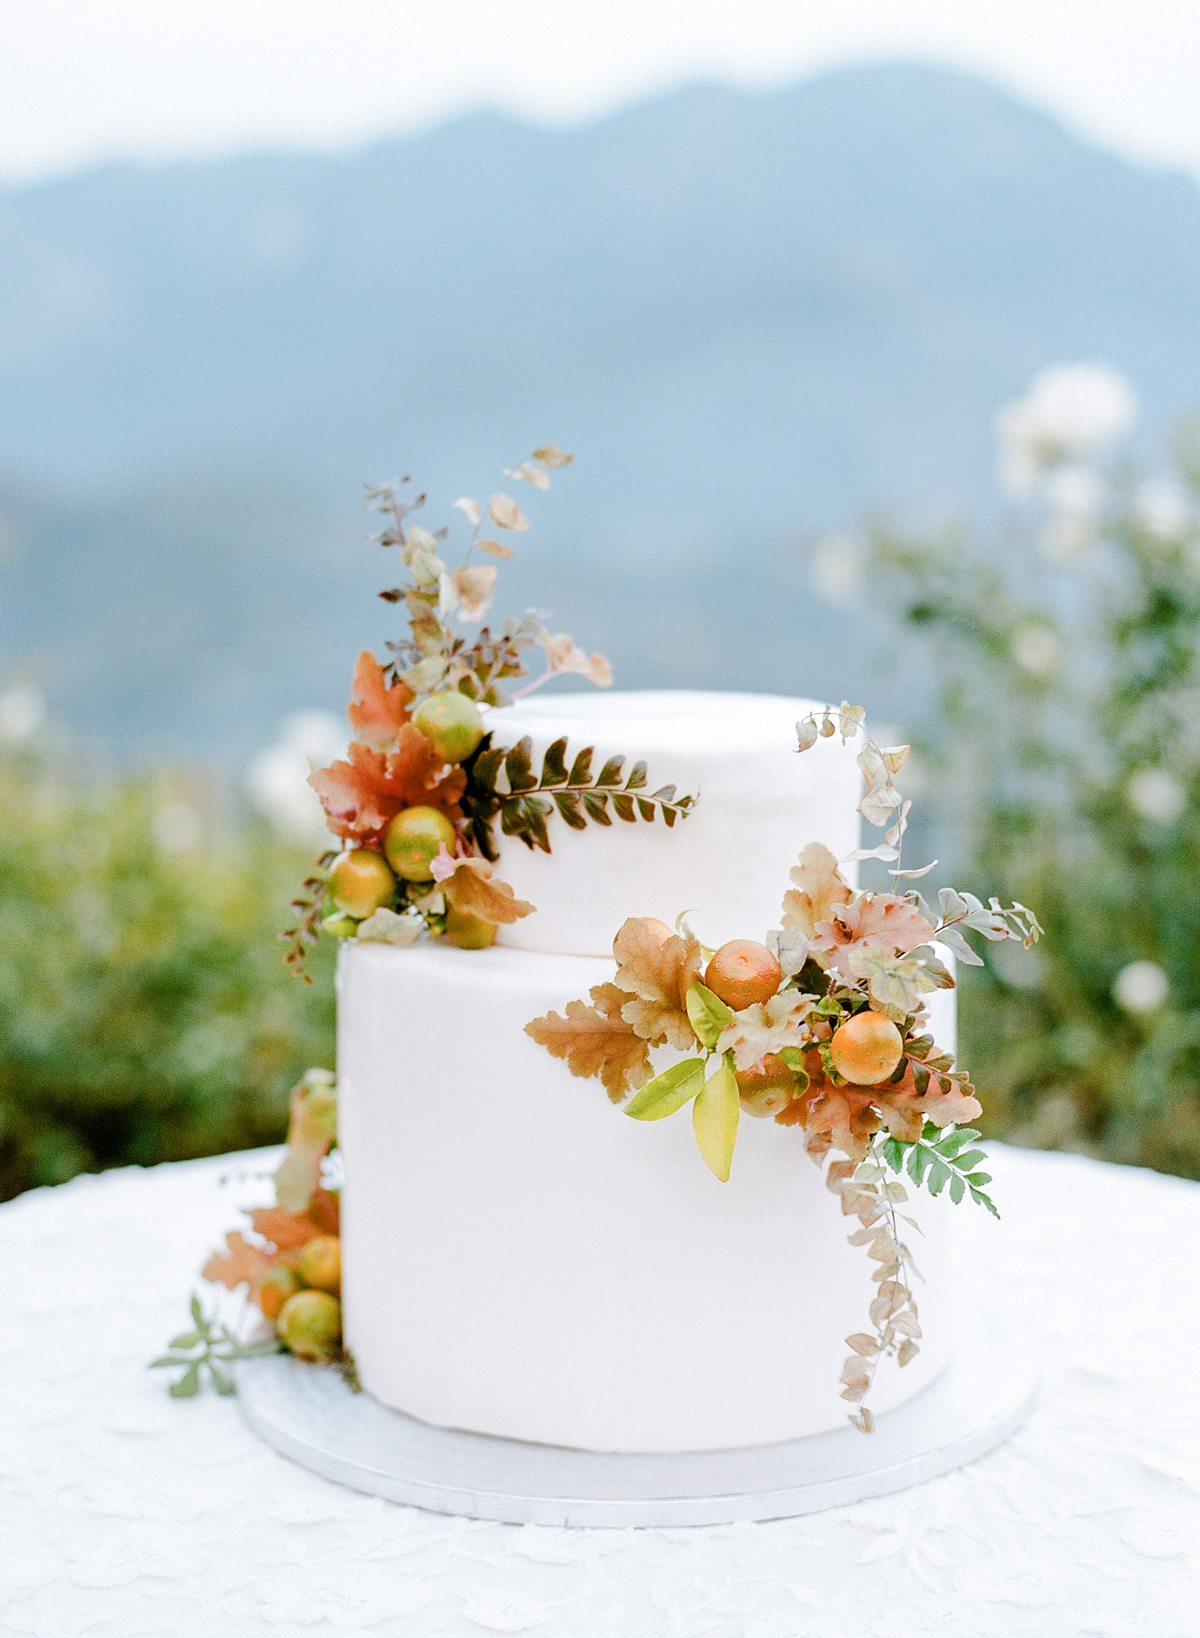 two tiered white frosted wedding cake with fall floral and citrus accents